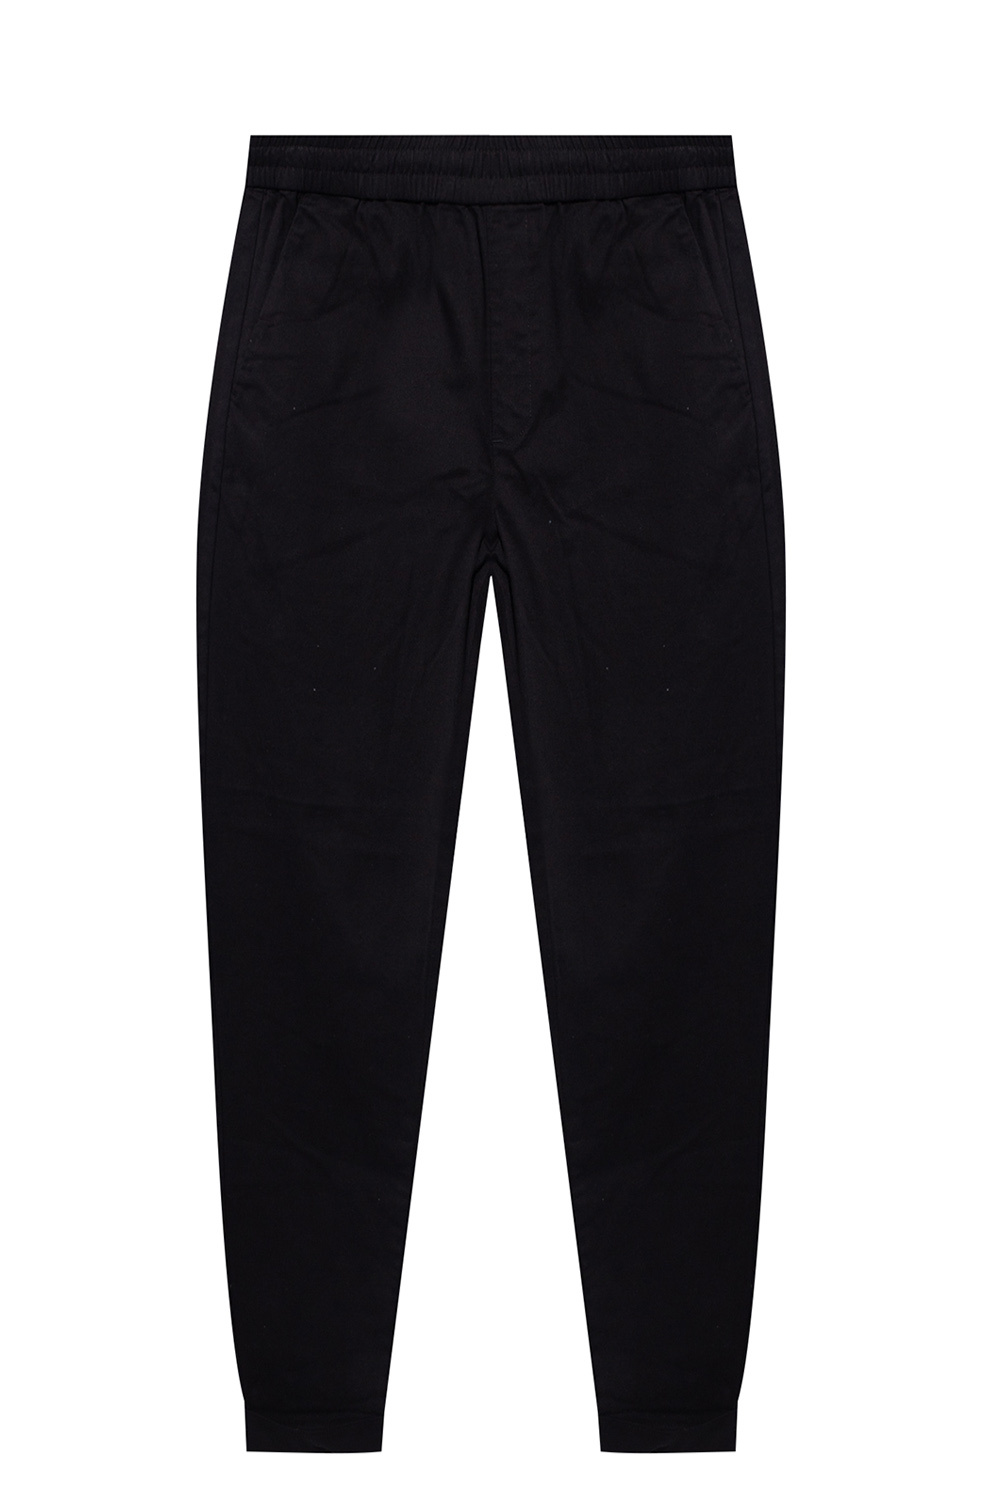 AllSaints 'Dix' trousers with turn up cuffs